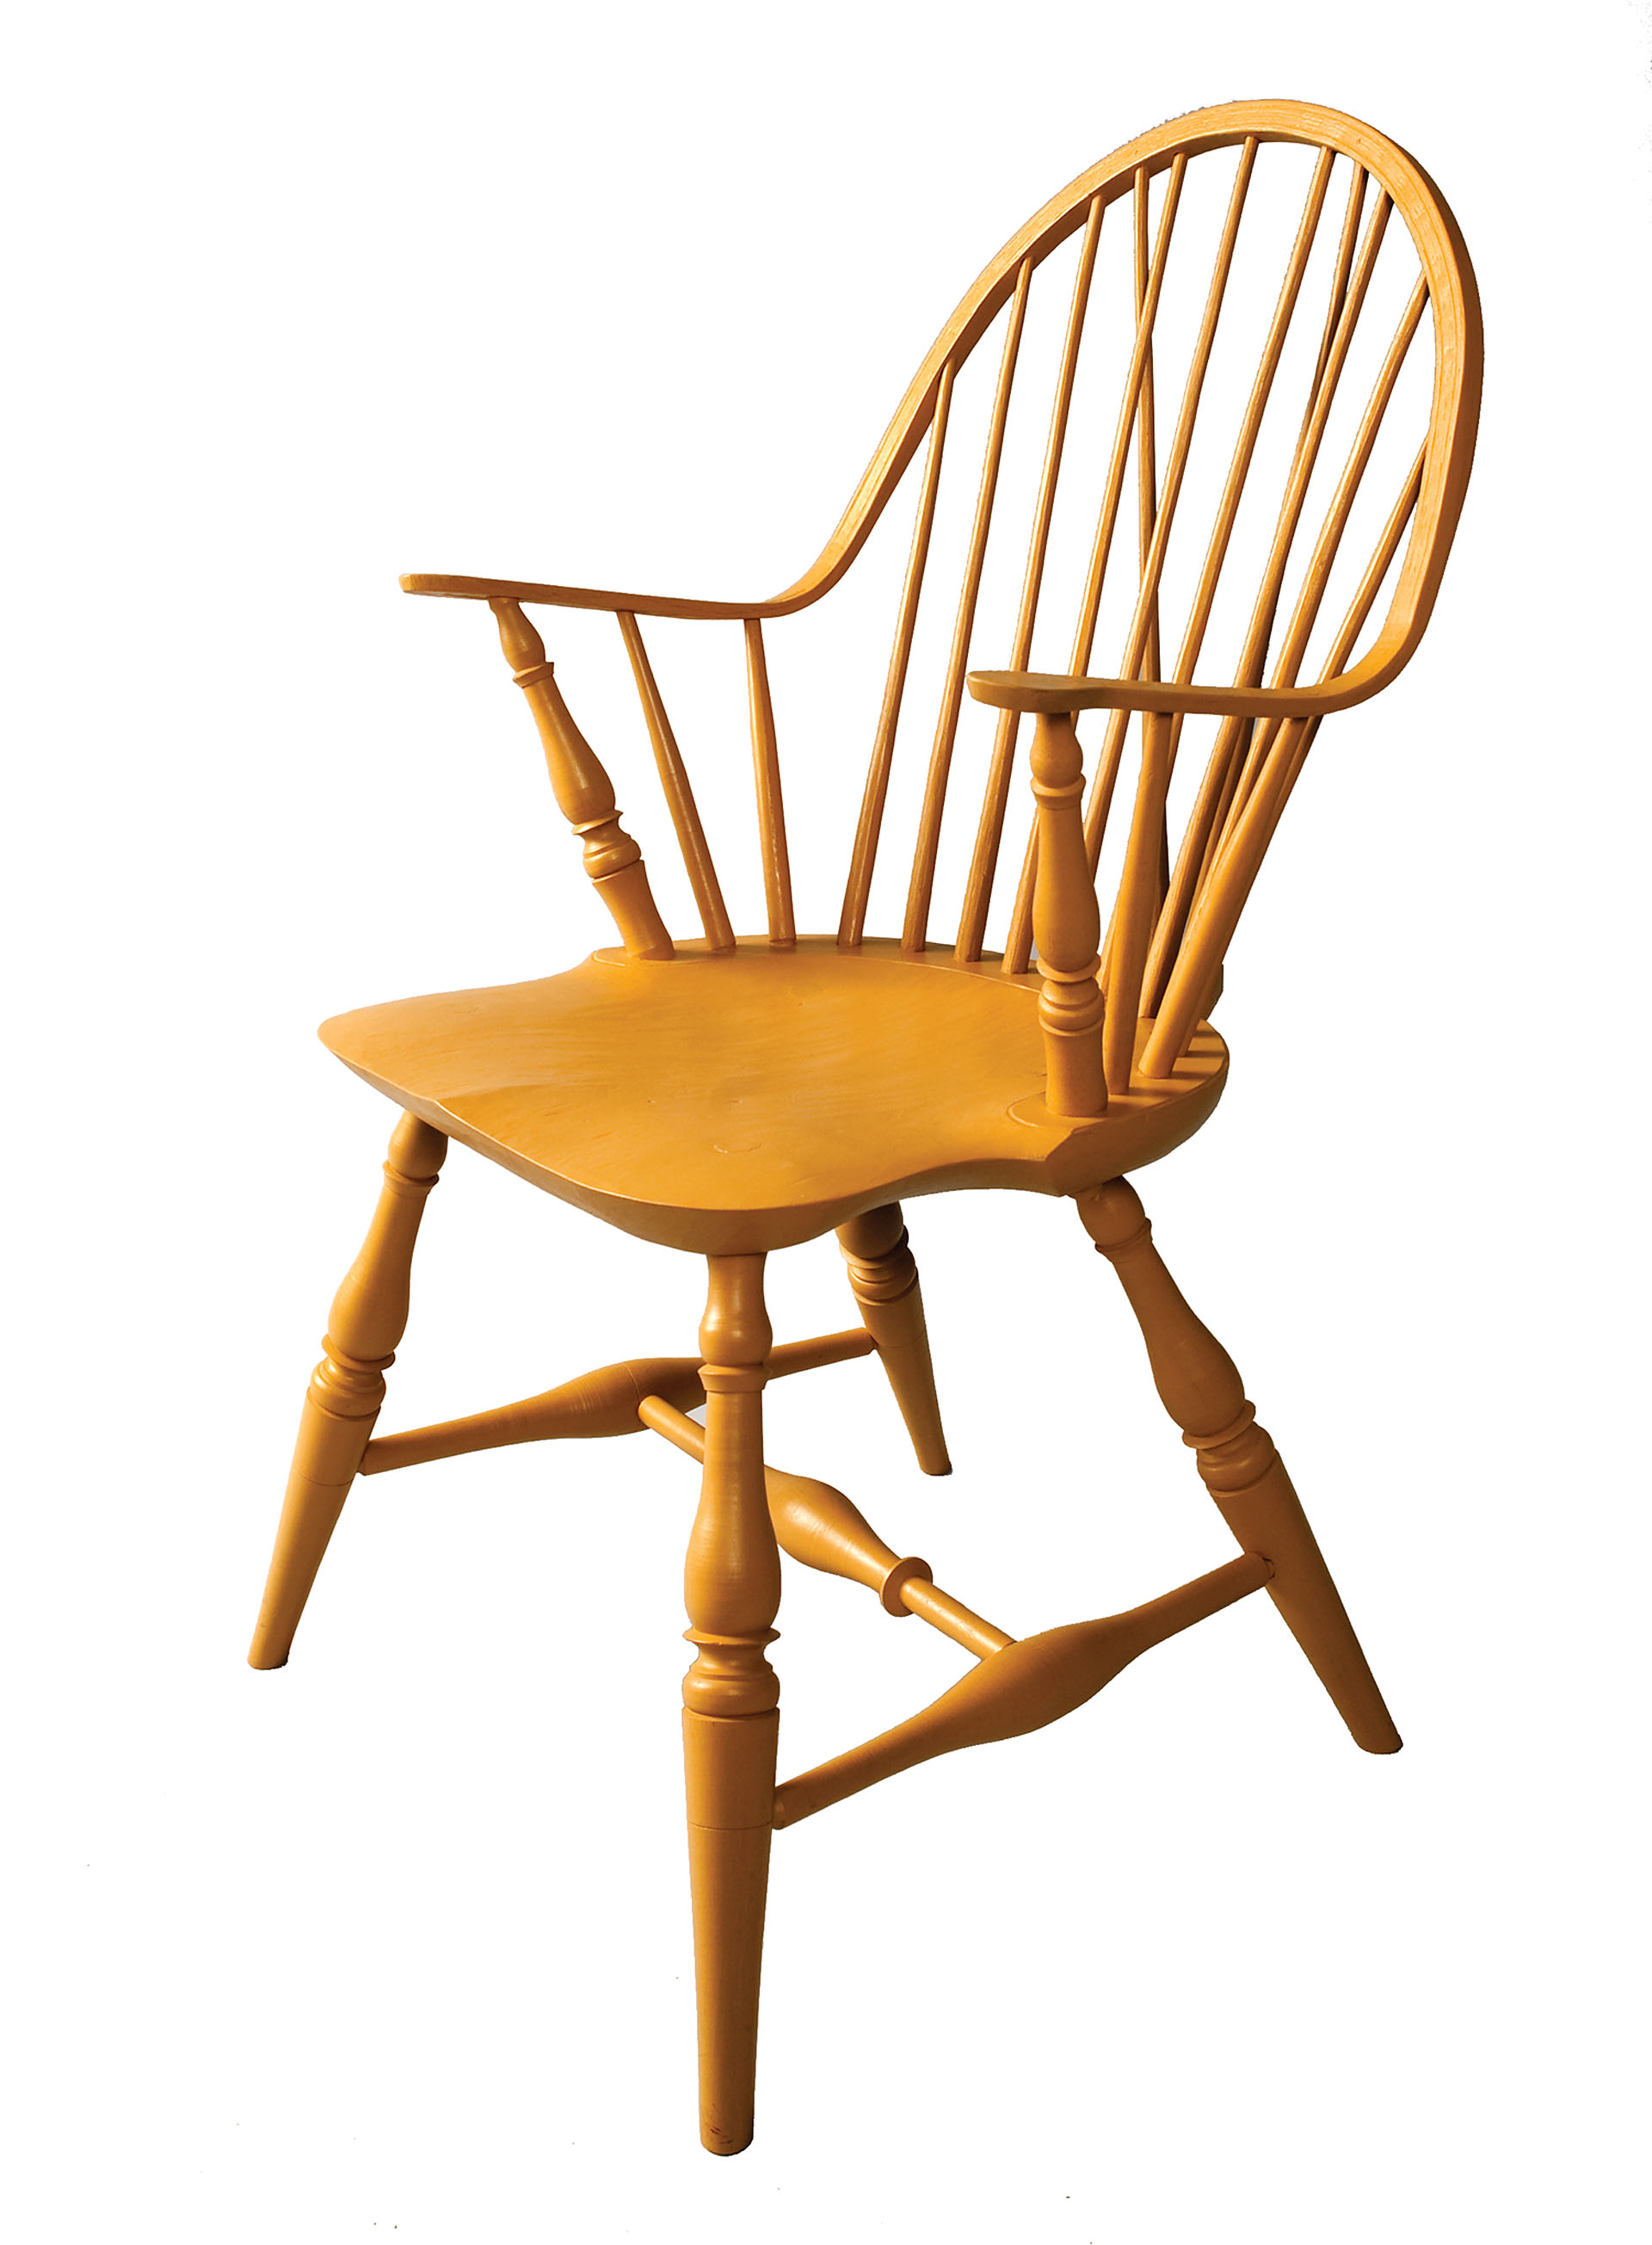 side ontario bayview sale cabinetry small chair fine chairs furniture quarter escarpment fan back for classic windsor